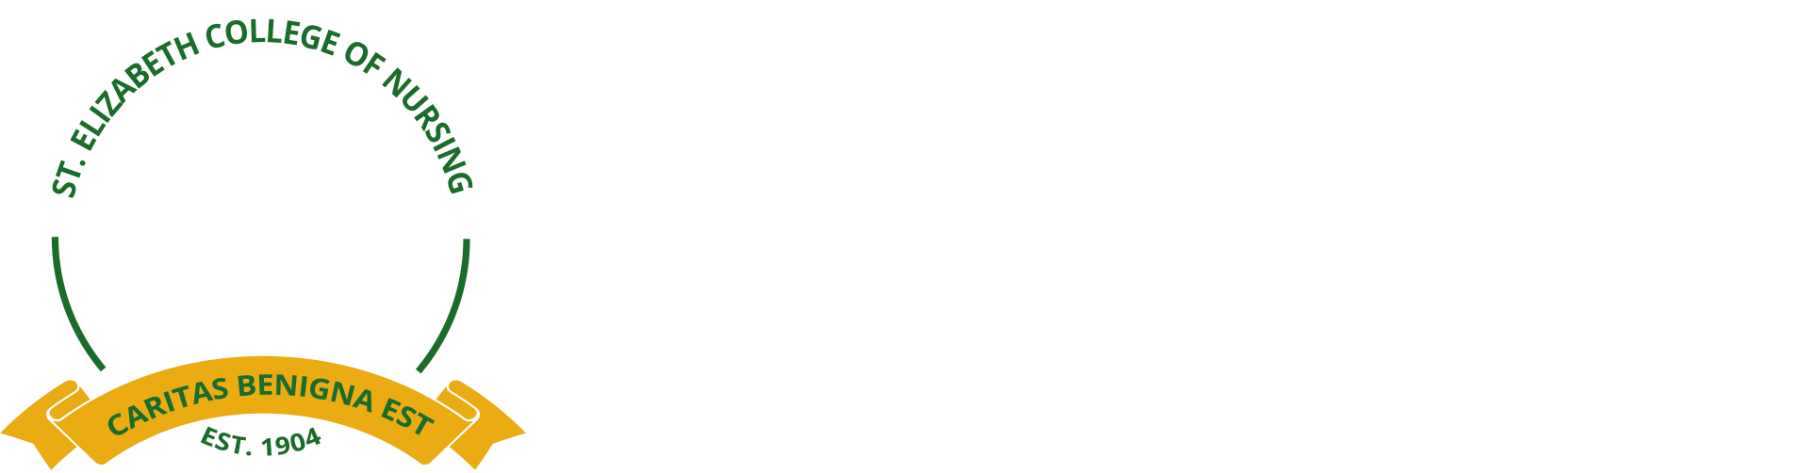 St. Elizabeth College of Nursing | Utica, NY